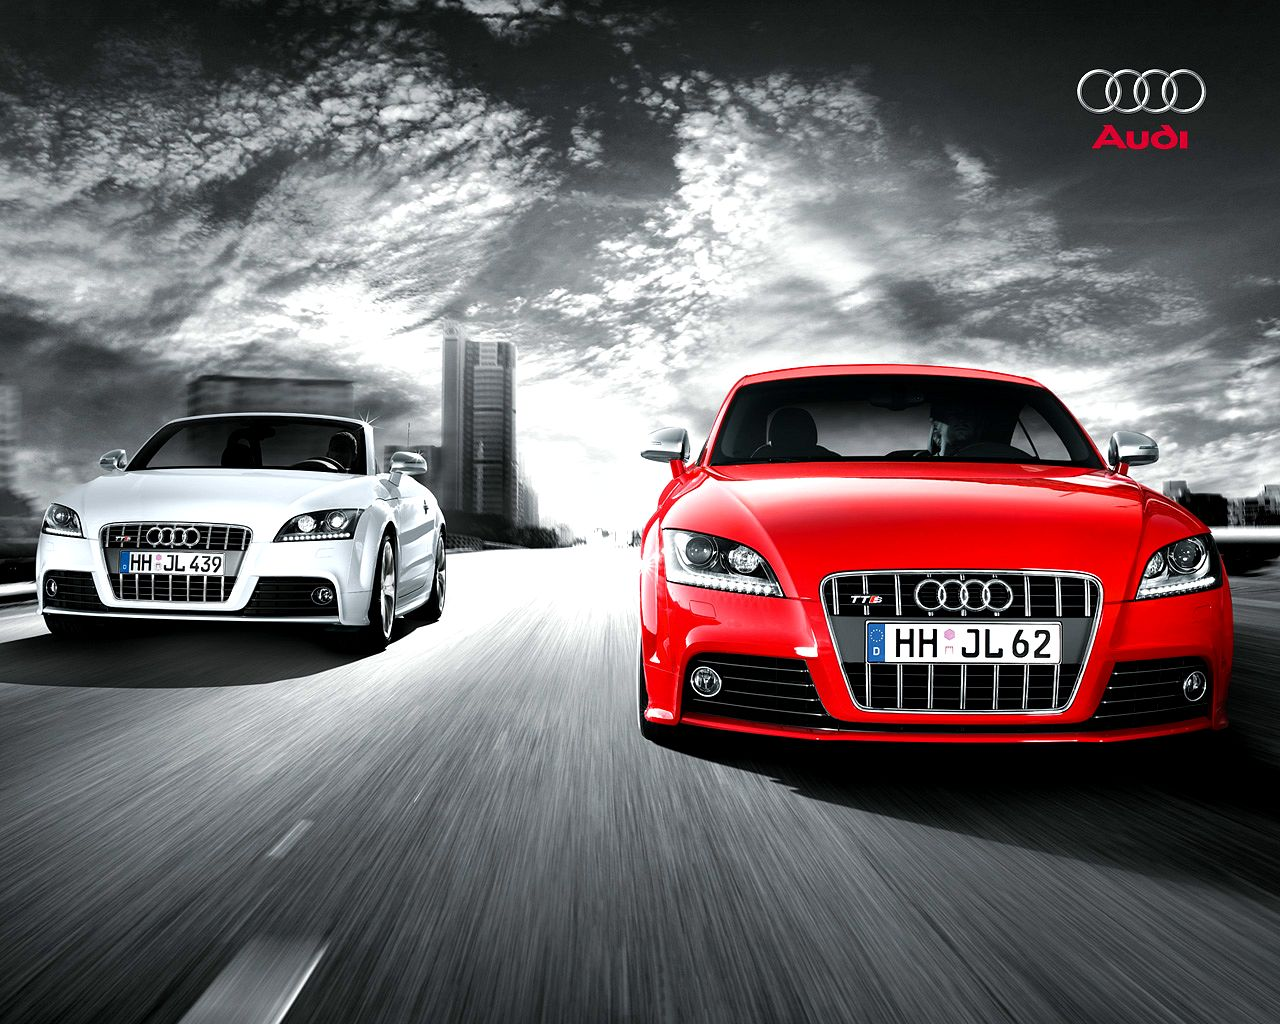 Audi Wallpapers Wallpapersafari